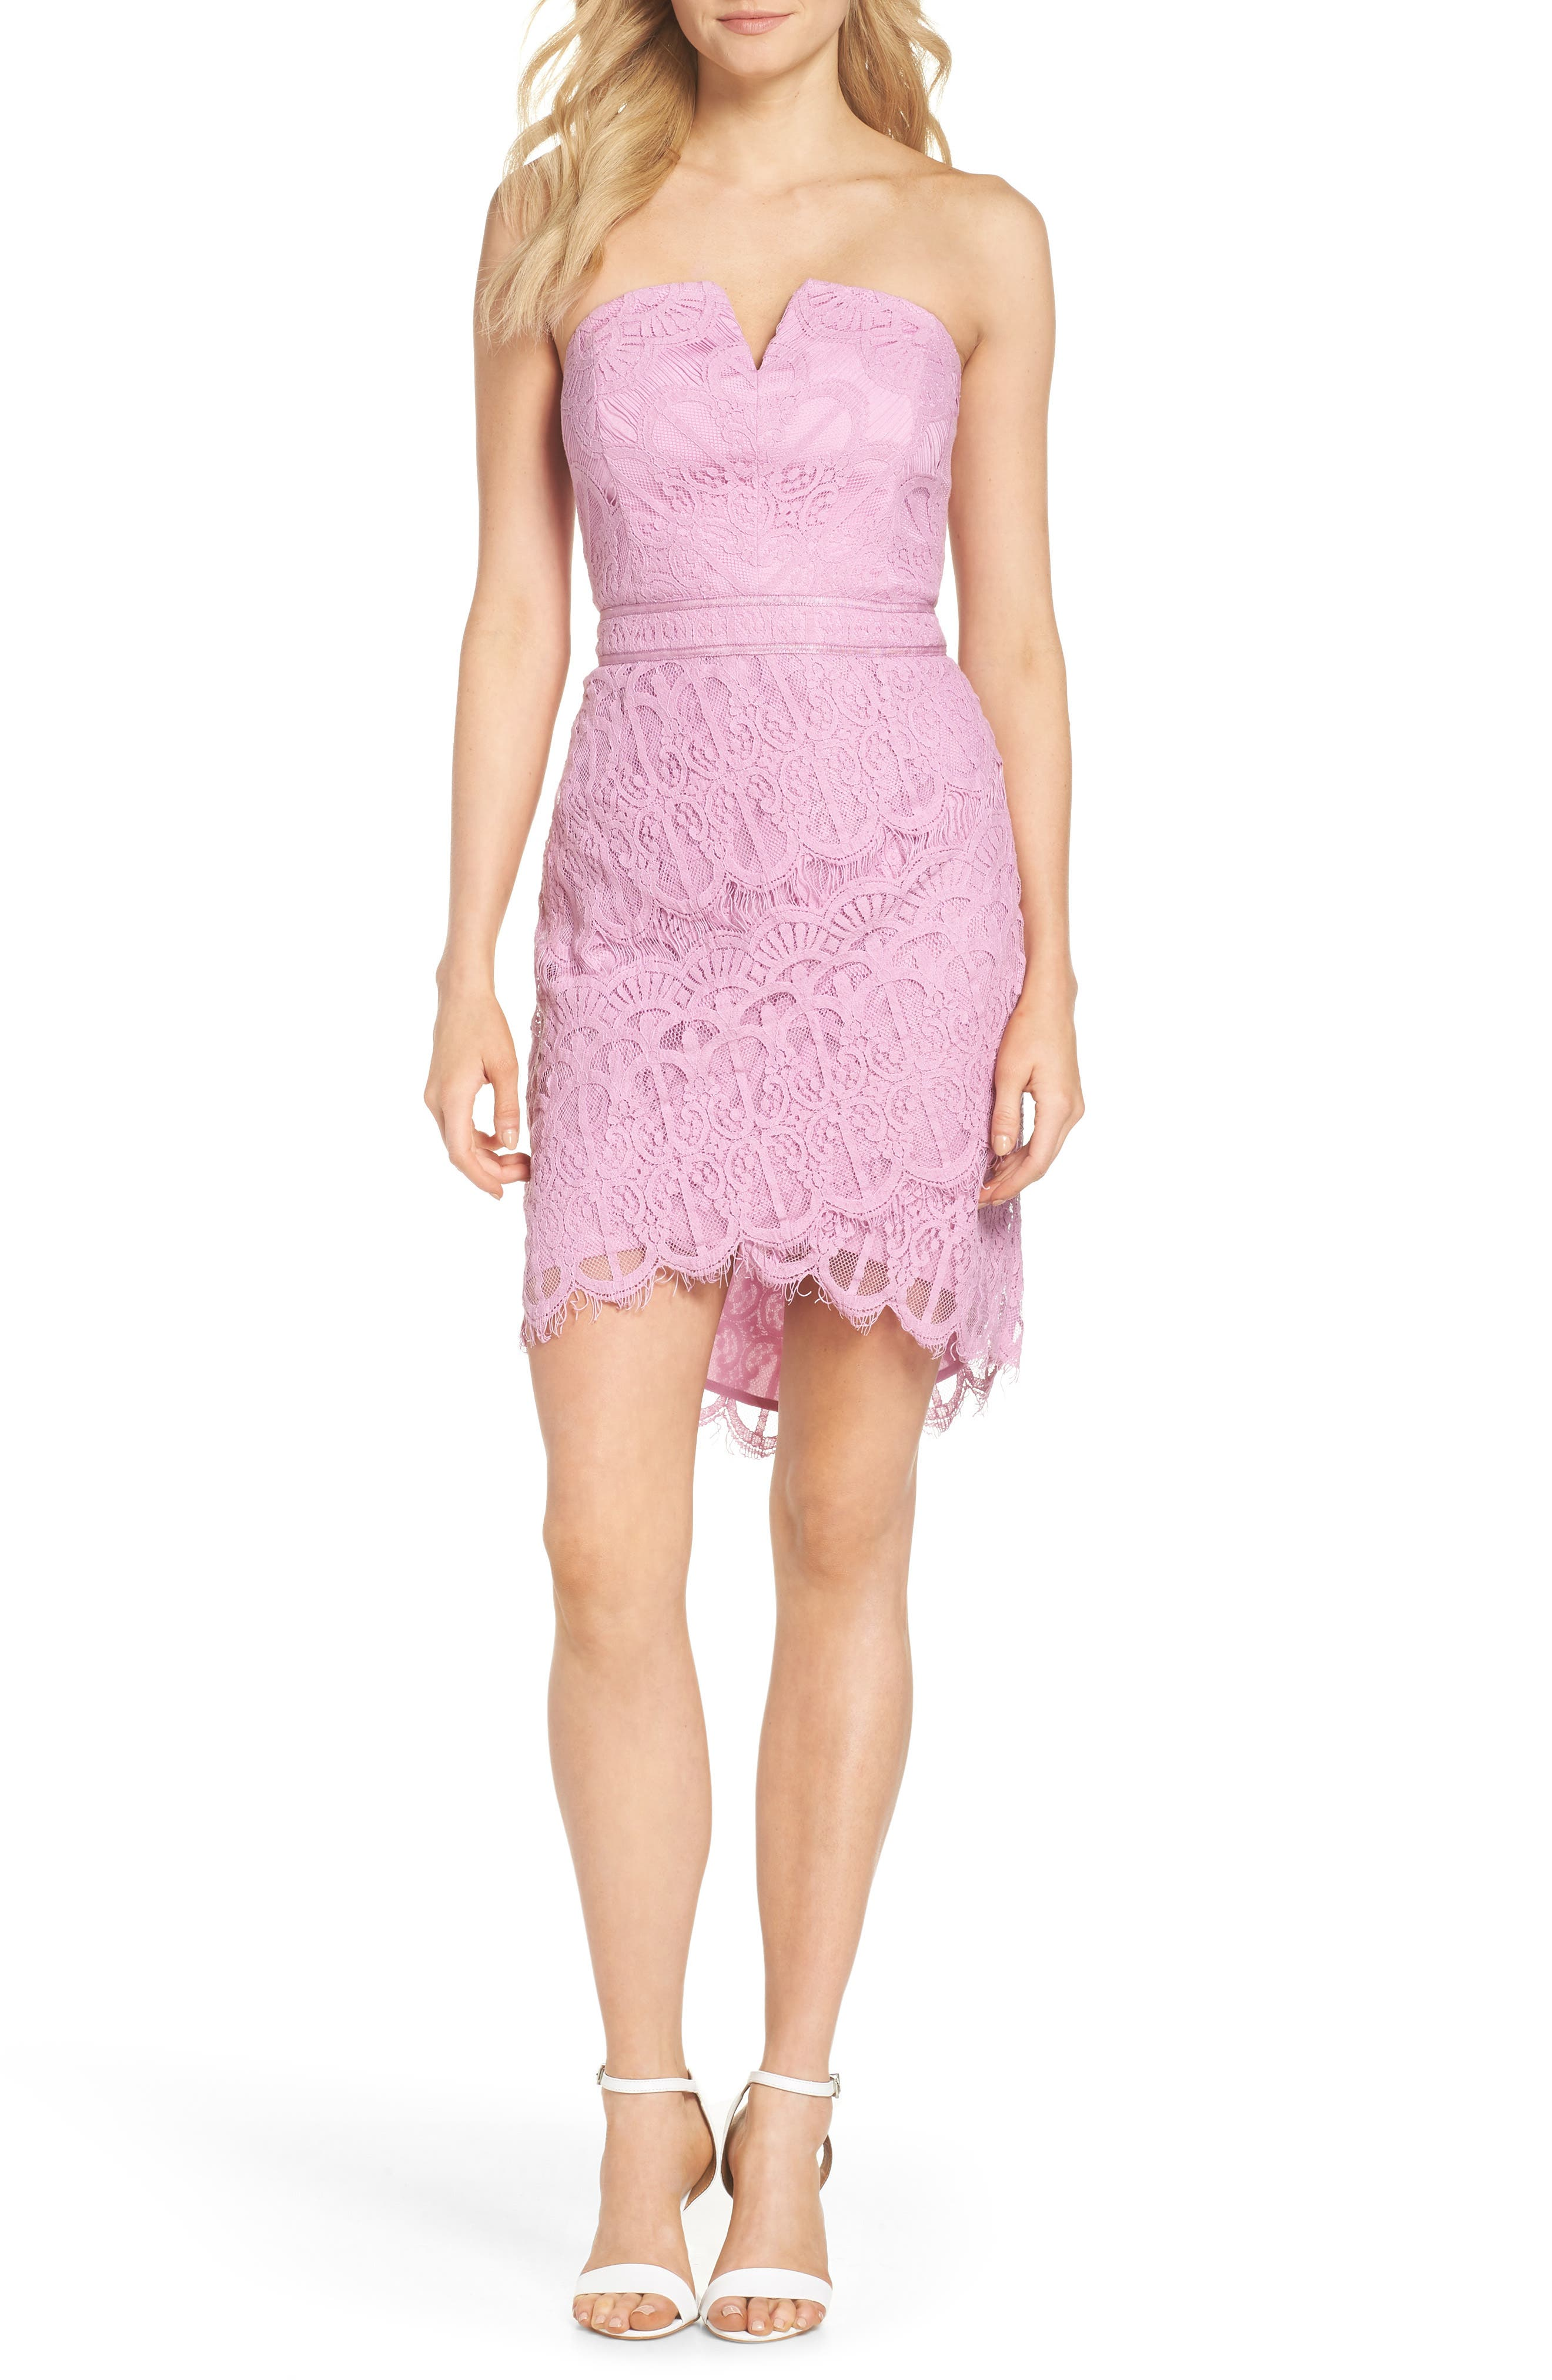 Strapless Lace Dress,                             Main thumbnail 1, color,                             532